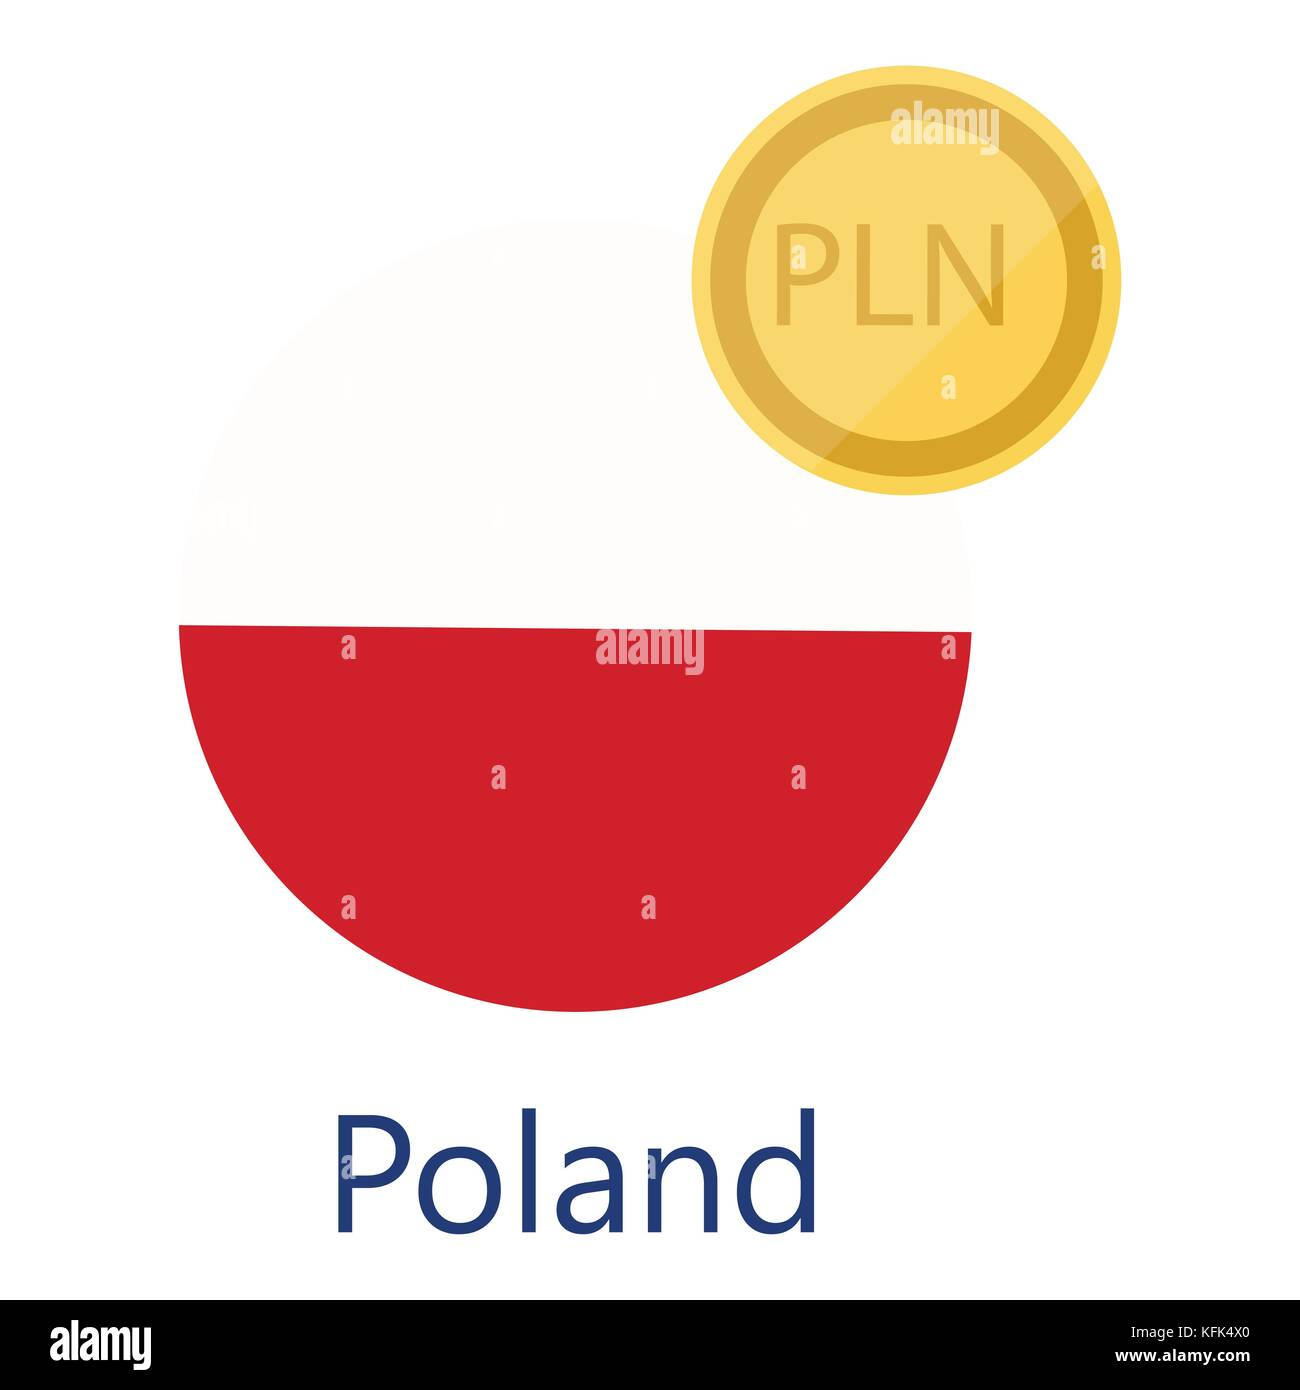 Vector Illustration Poland Round Flag And Currency Symbols Pln Stock